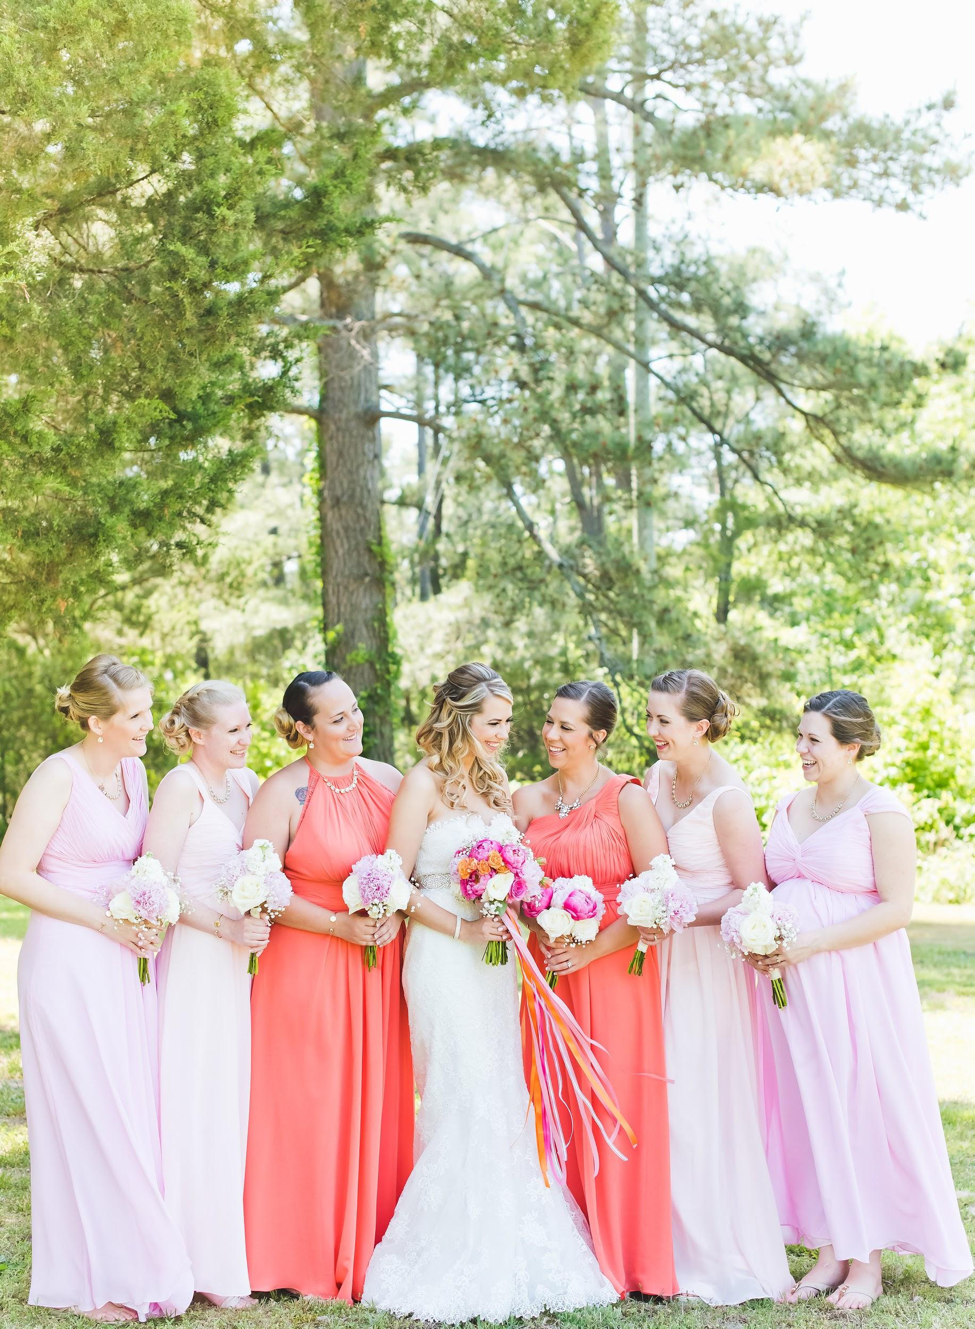 Kate Supa Photography | Azazie Bridesmaid dresses